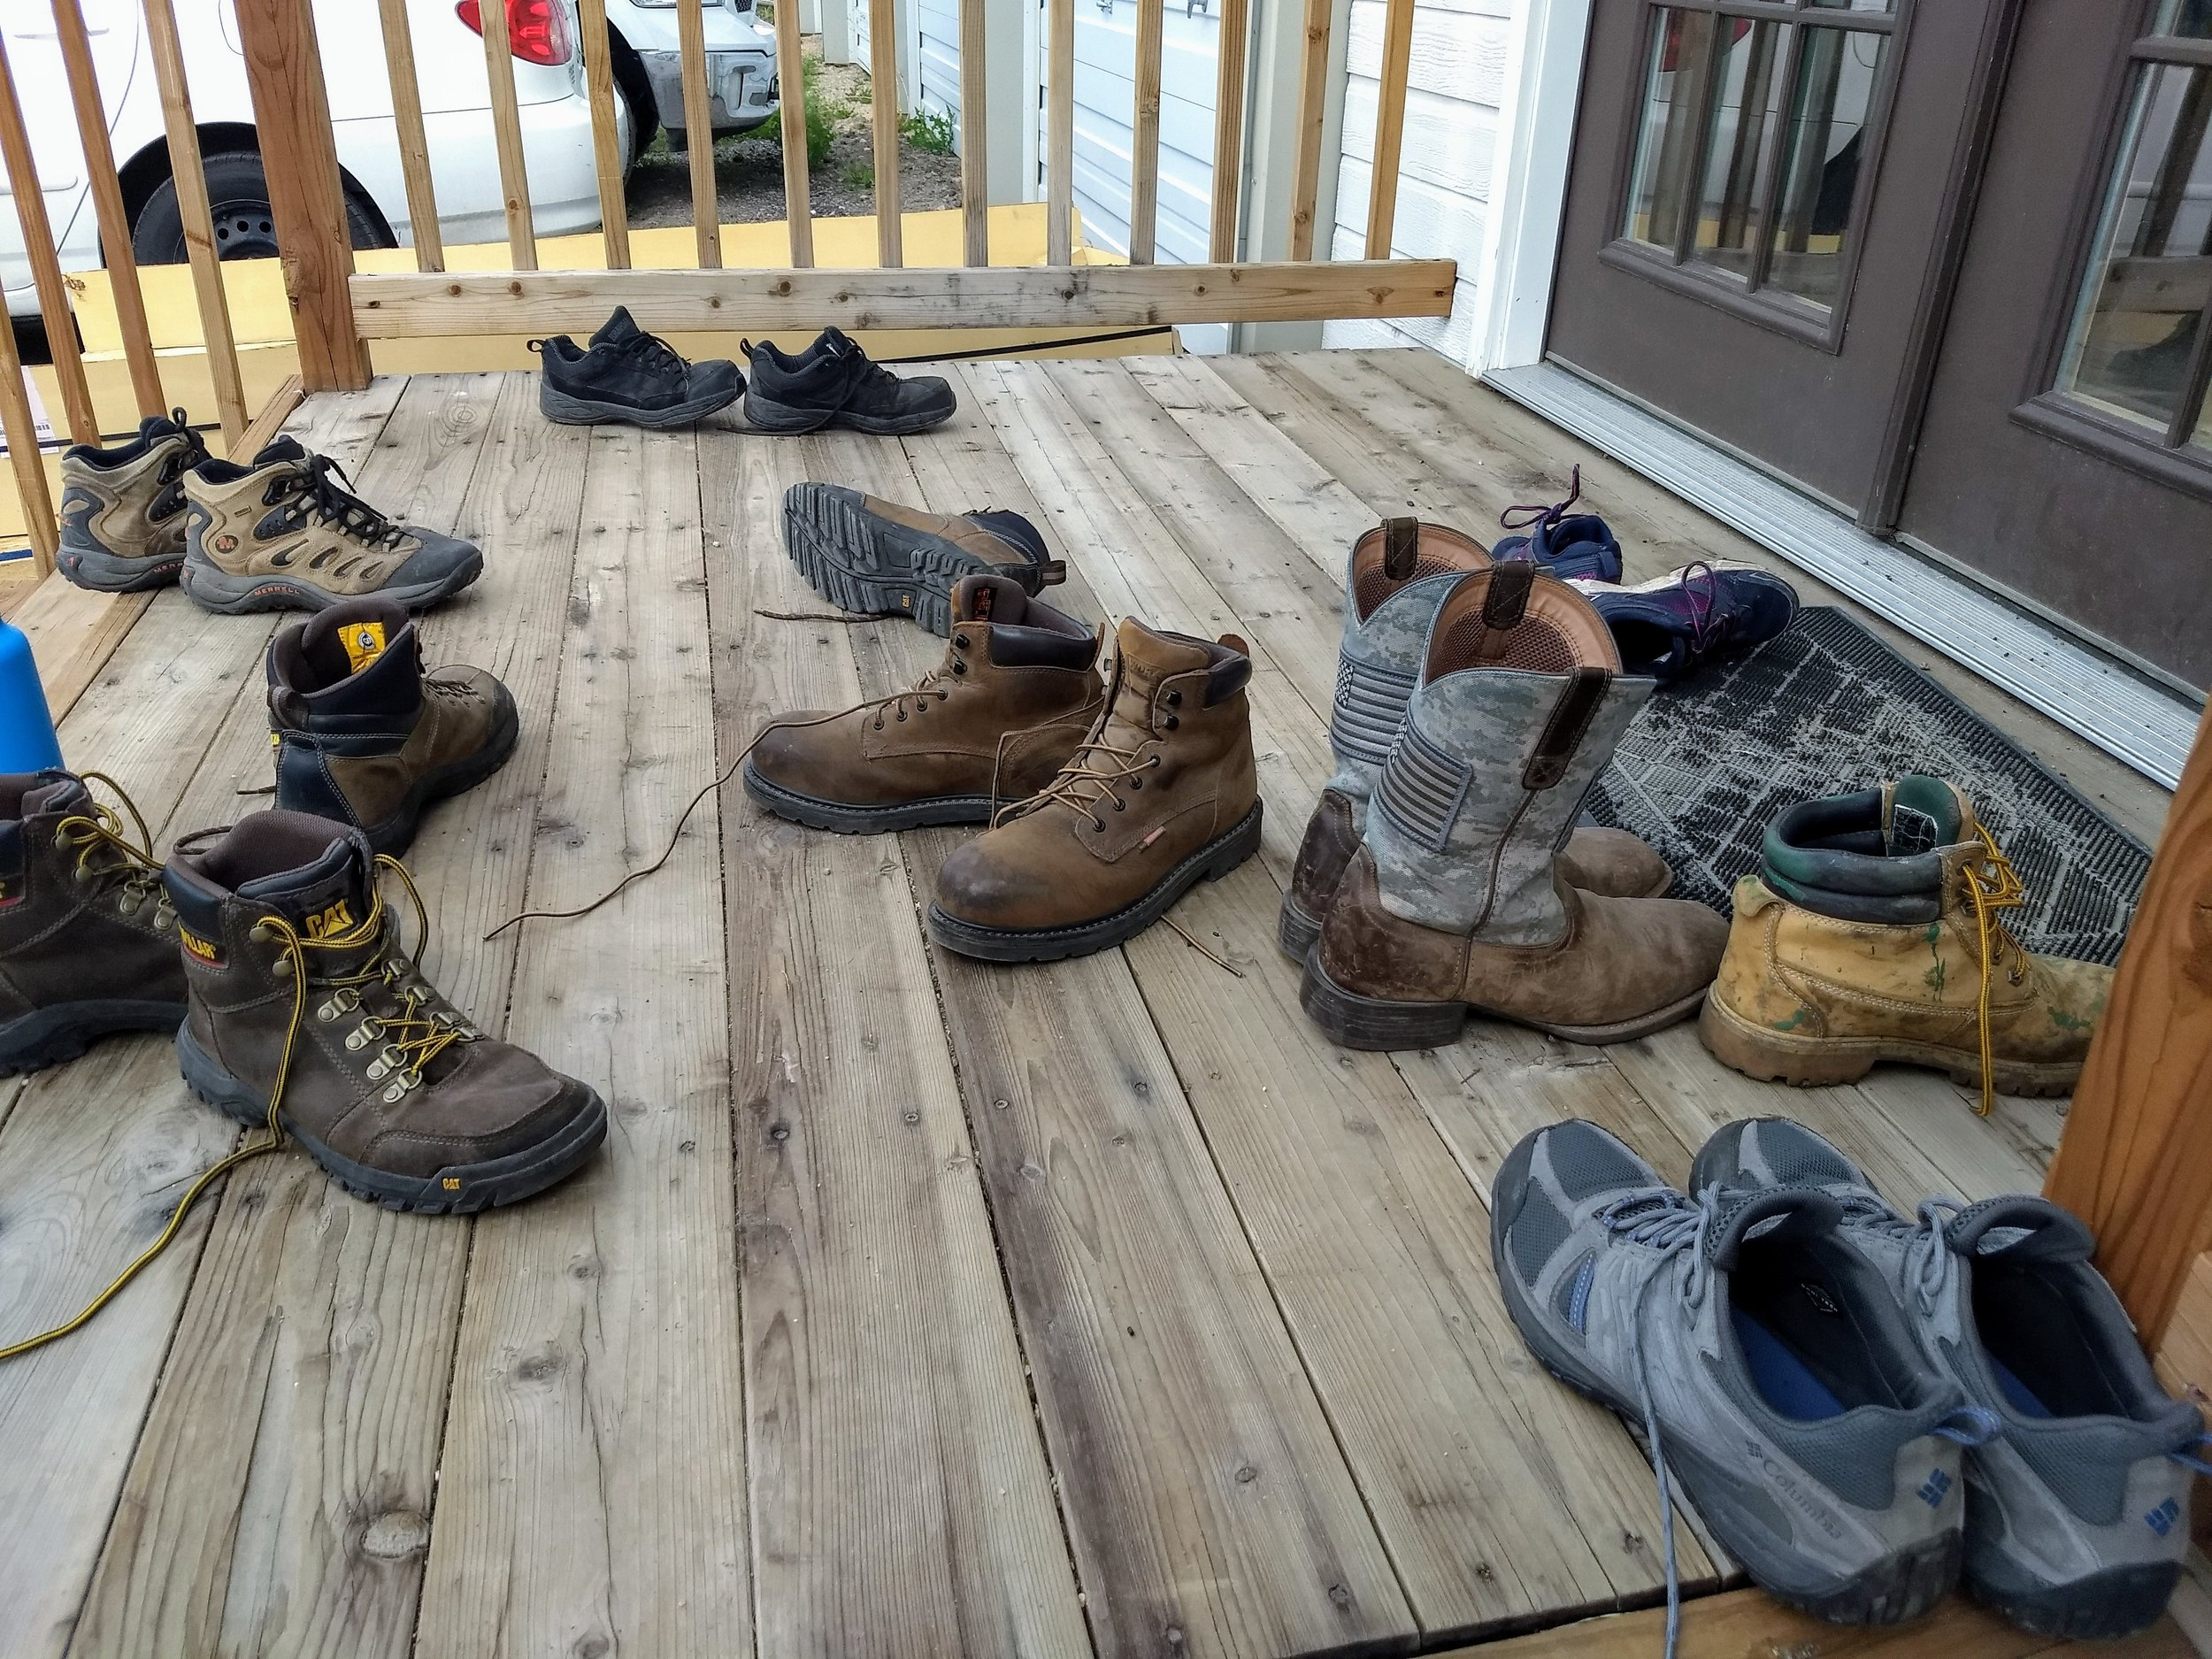 Everyone is required to take off their shoes before going into the office to eat lunch and have our daily meeting. This photo of shoes is a great symbol of the hard work done every day on the horse trails of Bell Mountain Ranch.